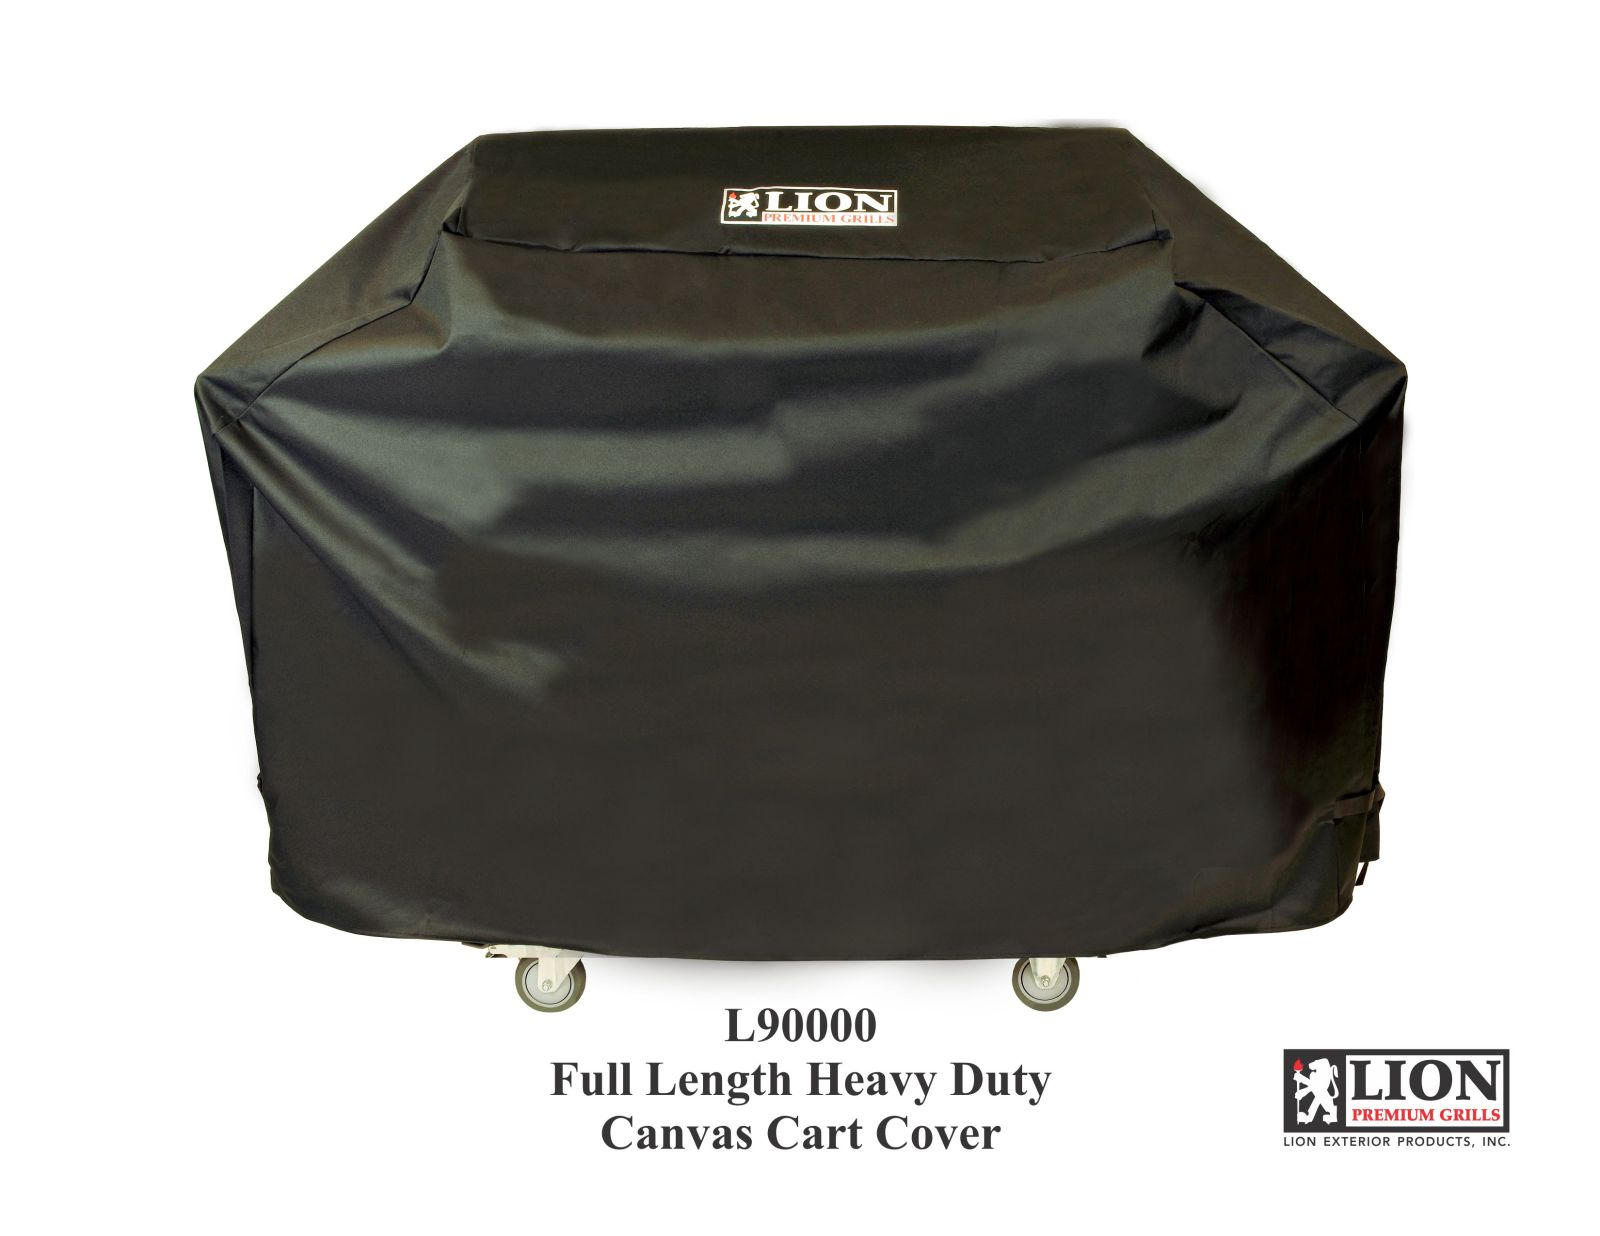 Lion Premium Grills Black Full Length Cart Cover For L90000 Grill - CC506723